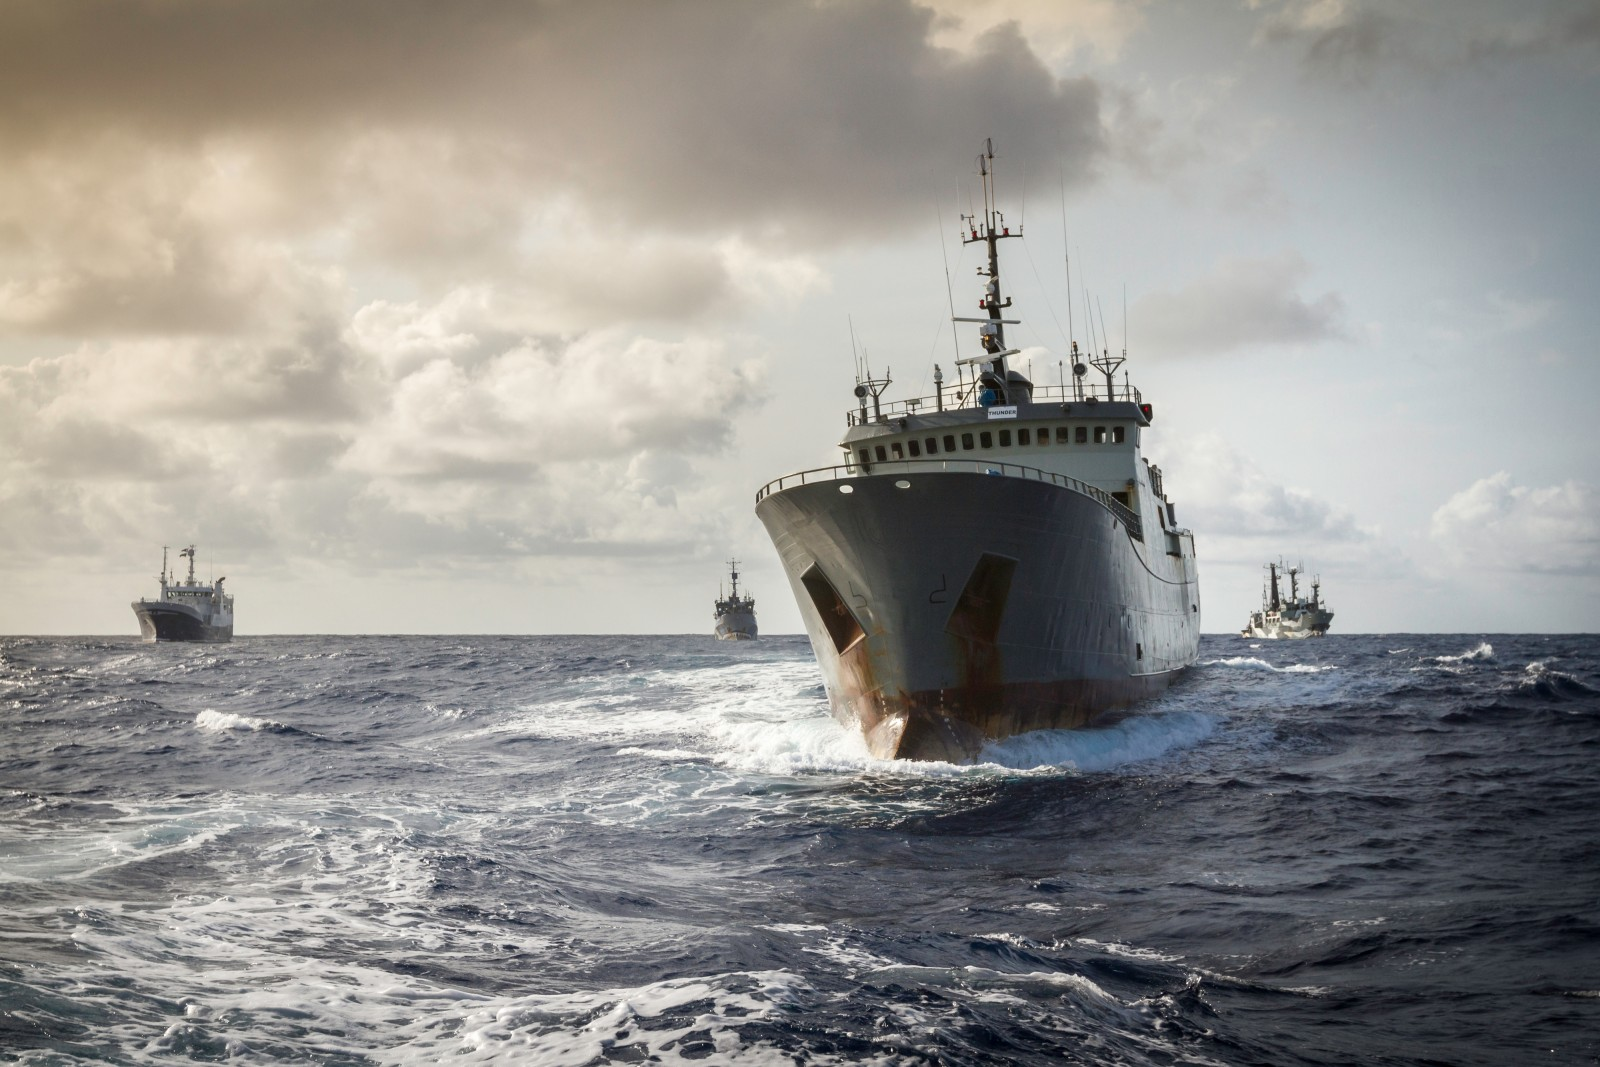 The incident only stiffened the campaign's resolve, and as international attention mounted, added to their number, right. The Australian toothfish long-liner Atlas (far-left in picture) joined the two Sea Shepherd vessels in the pursuit off West Africa. The Atlas was signalling symbolic support from COLTO, the Perth-based Coalition of Legal Toothfish Operators, which had previously been critical of the Sea Shepherd campaign.